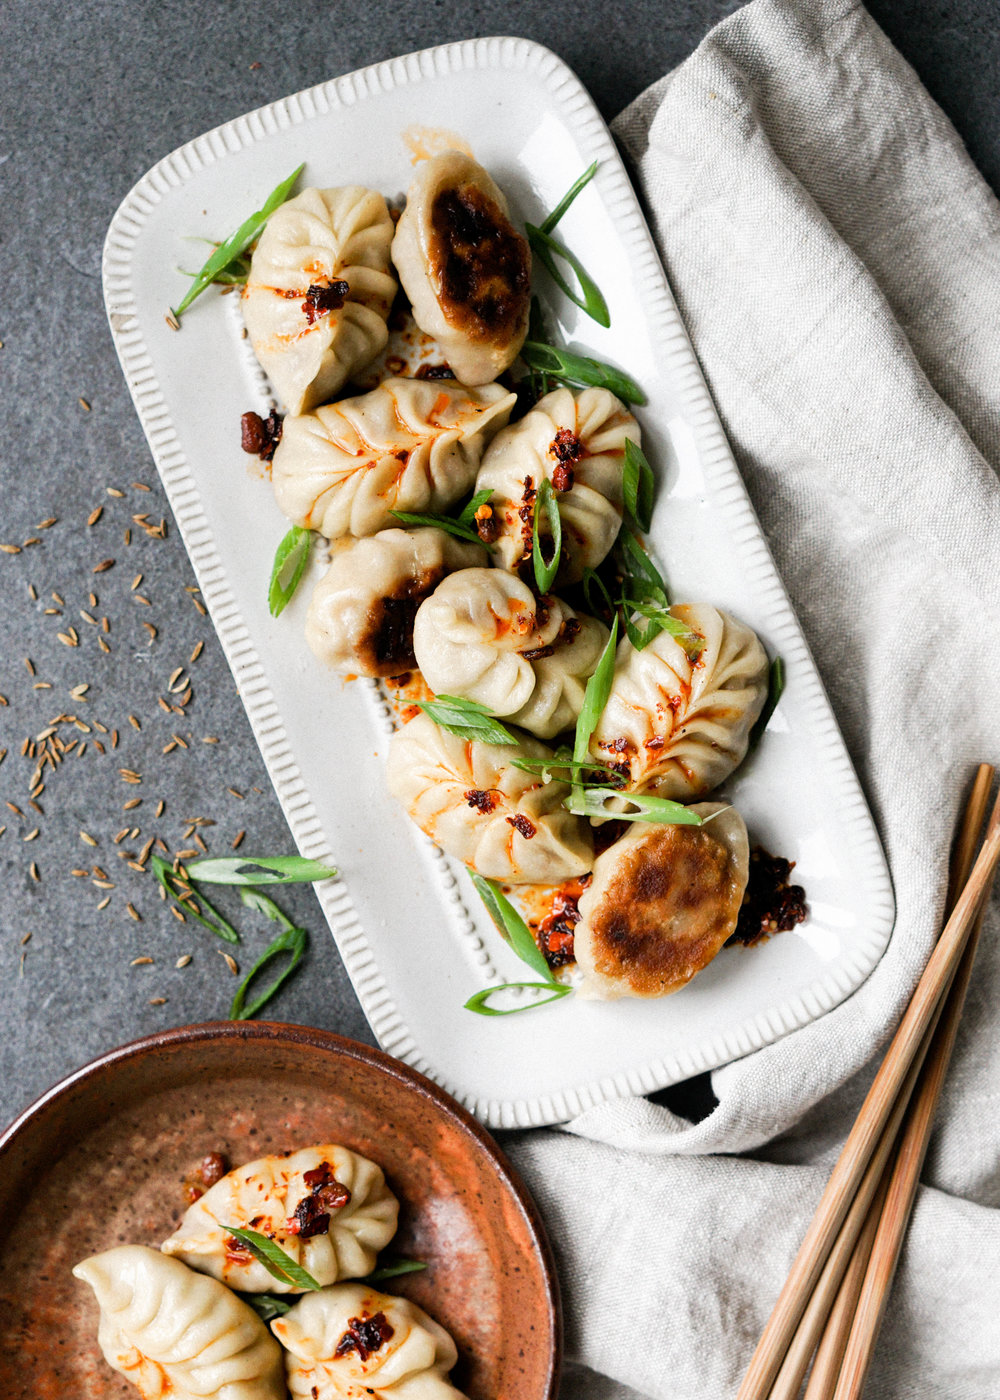 Cumin Lamb Dumplings // https://eatchofood.com/blog/2019/1/12/cumin-lamb-dumplings